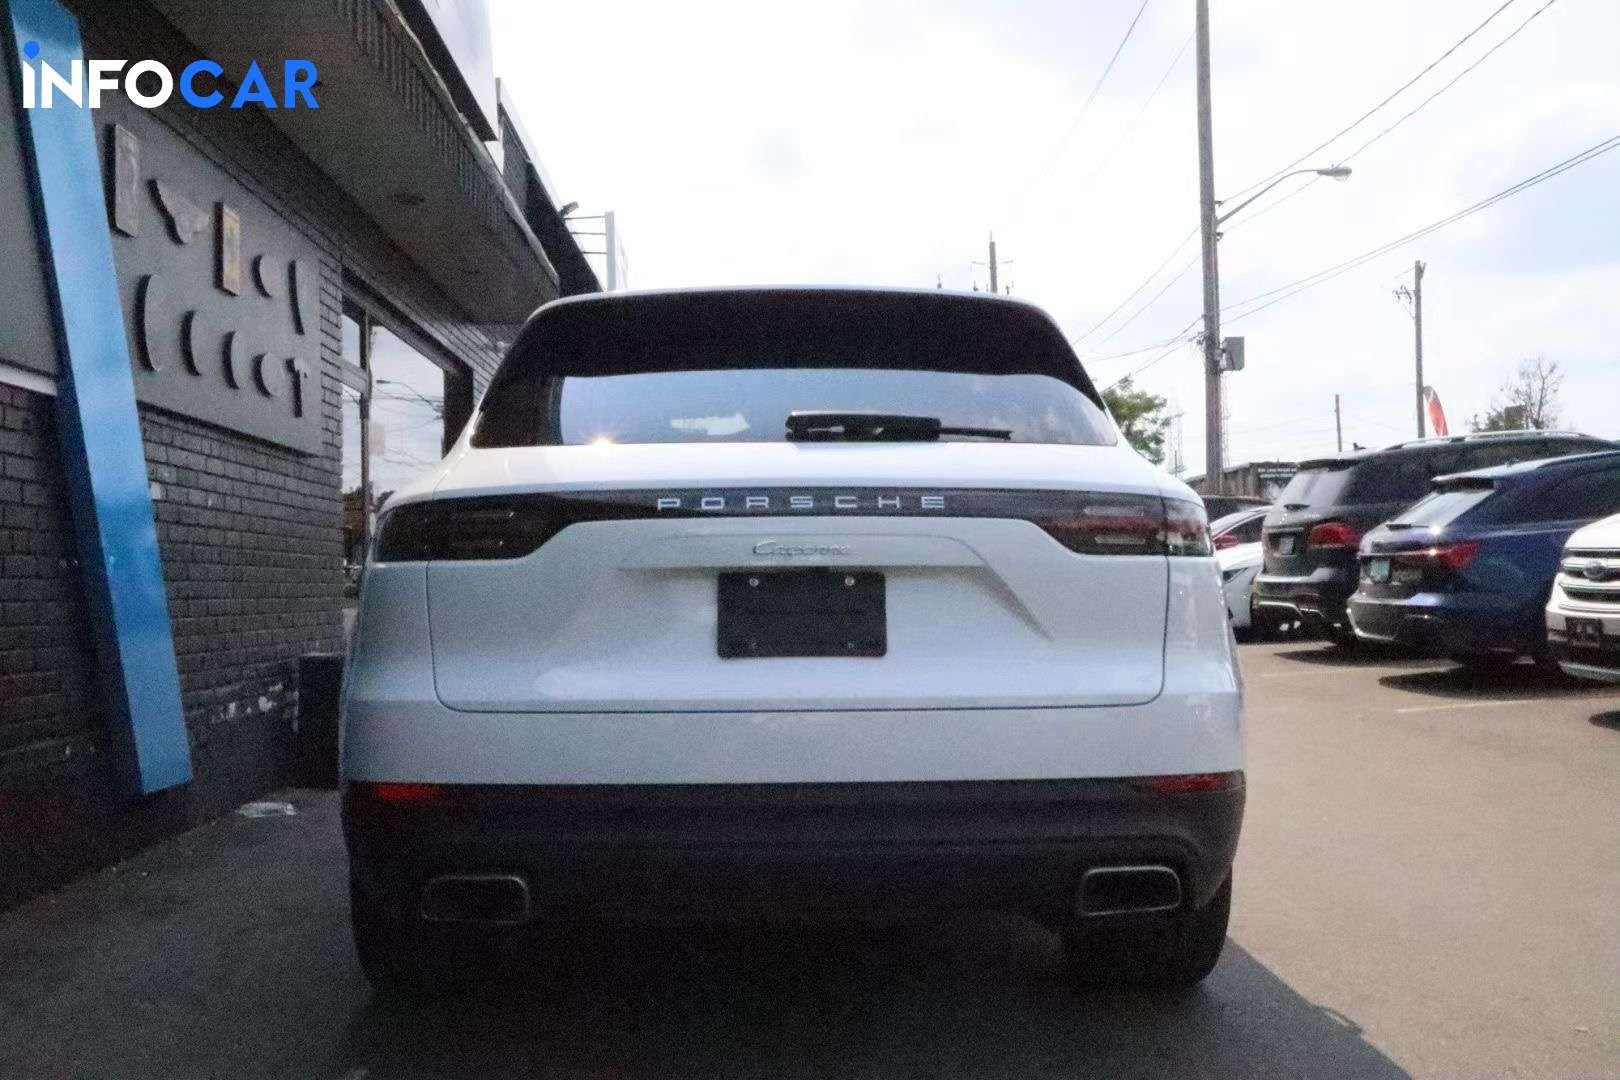 2020 Porsche Cayenne null - INFOCAR - Toronto's Most Comprehensive New and Used Auto Trading Platform